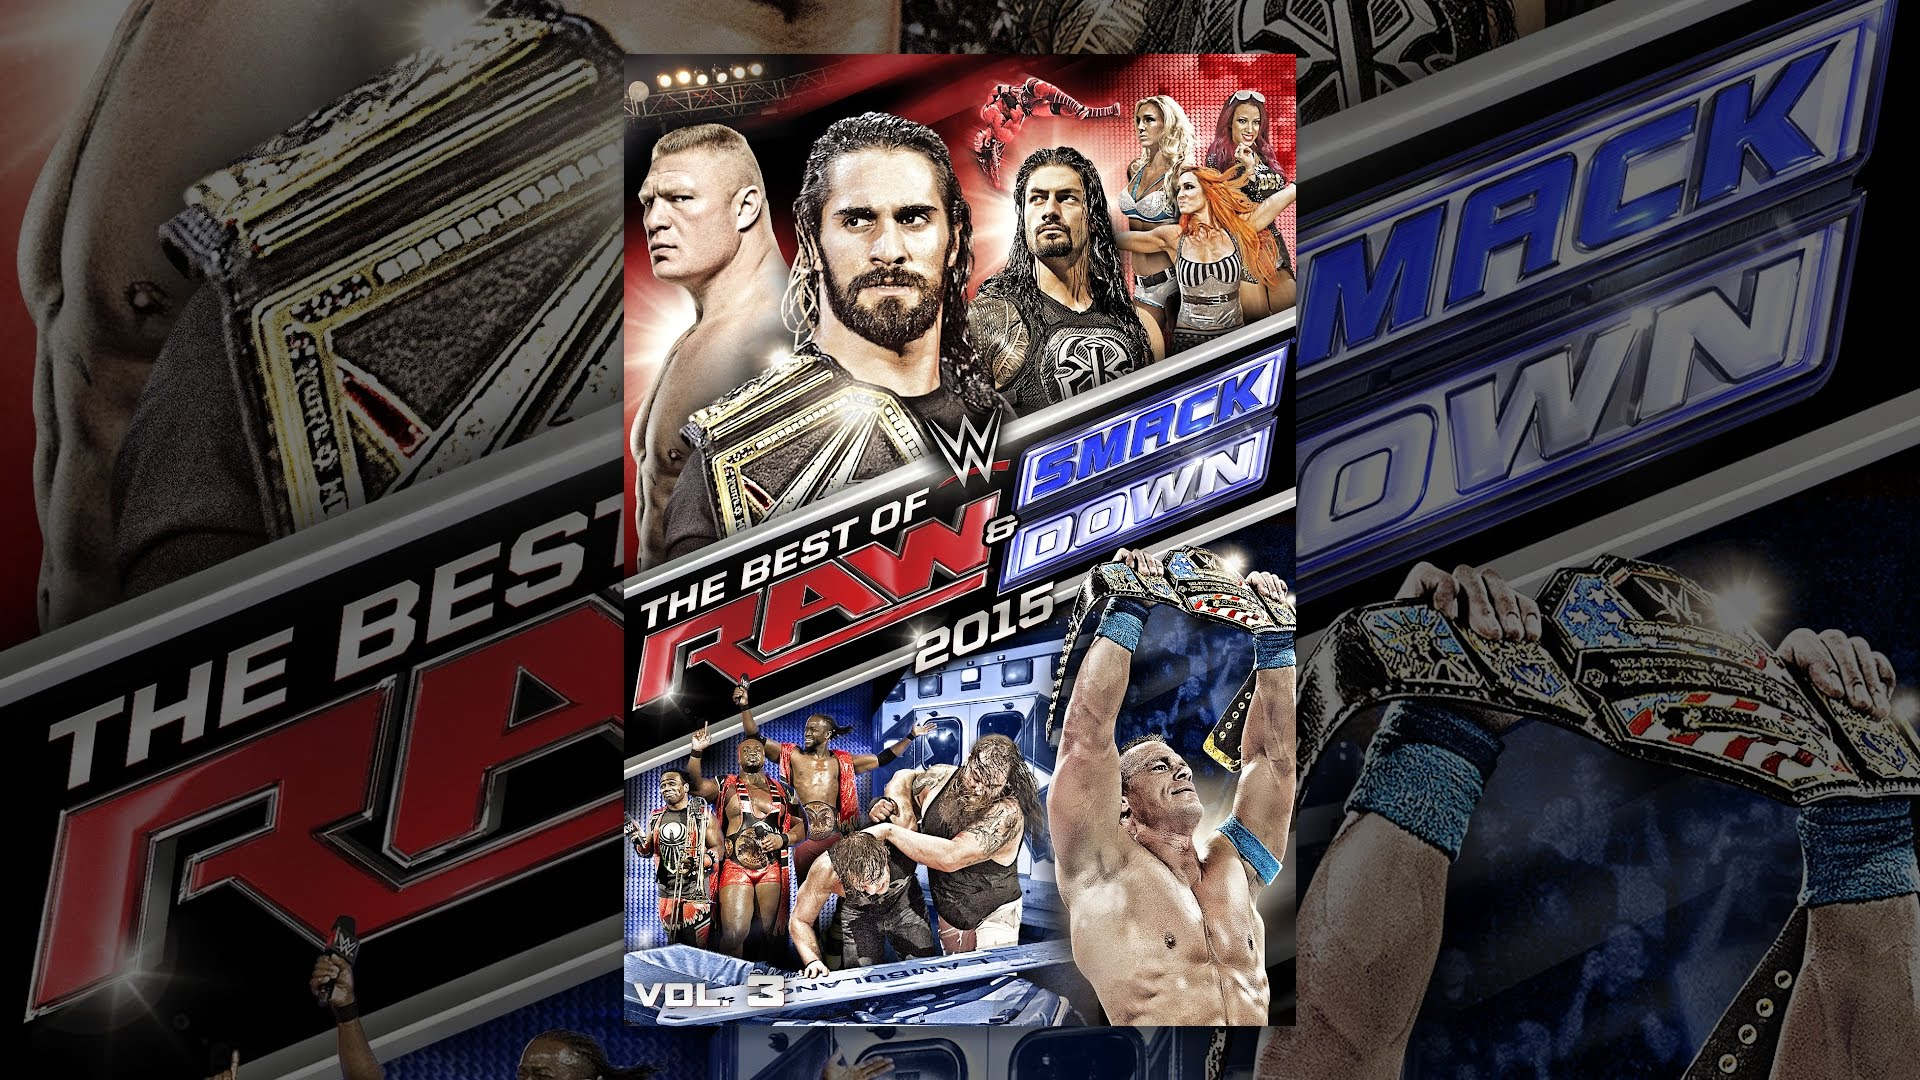 WWE: Best of RAW and Smackdown 2015 Volume 3